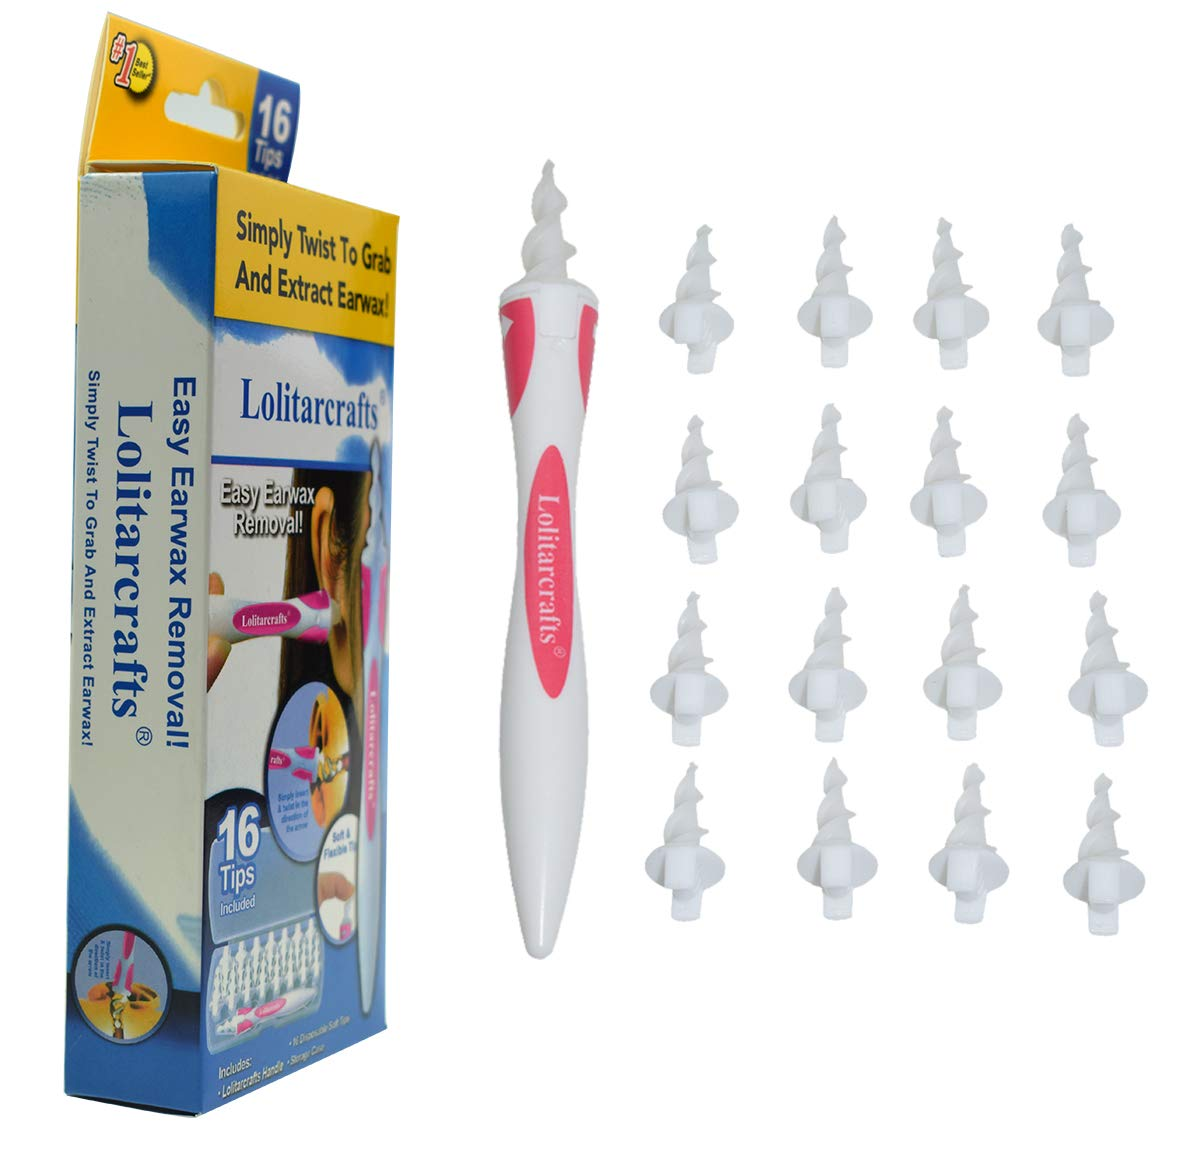 Lolitarcrafts Ear Wax Remover,Soft and Flexible Earwax Removal Tool Spiral Ear Cleaner with 16 Replacement Tips for Adults & Kids Ear Cleaning